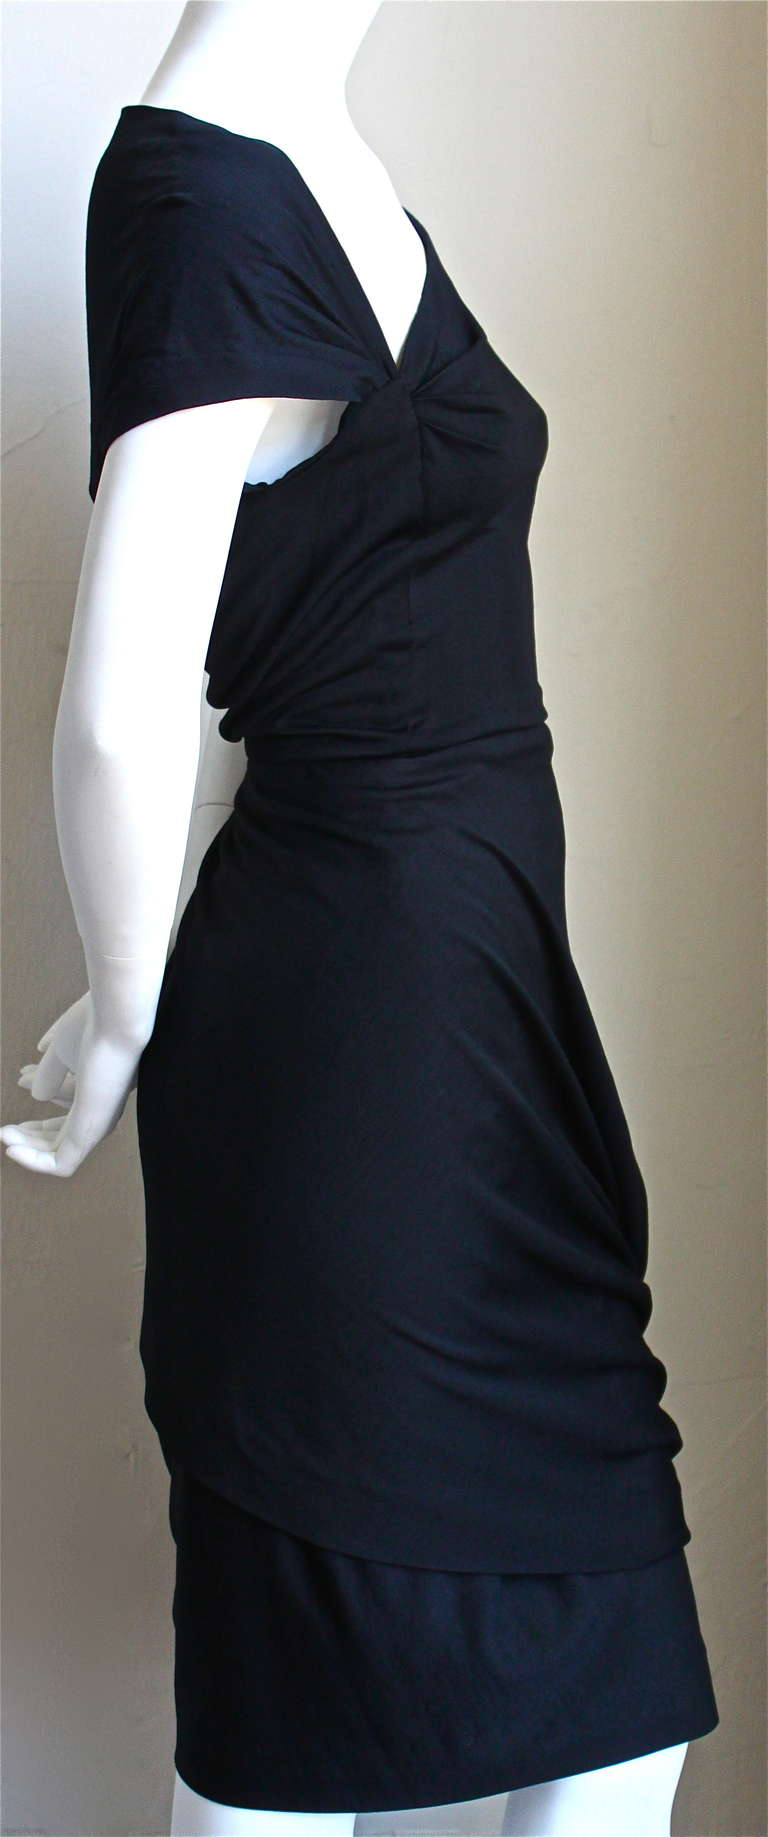 Black 1950's PEDRO RODRIGUEZ haute couture asymmetrical draped wool jersey dress For Sale